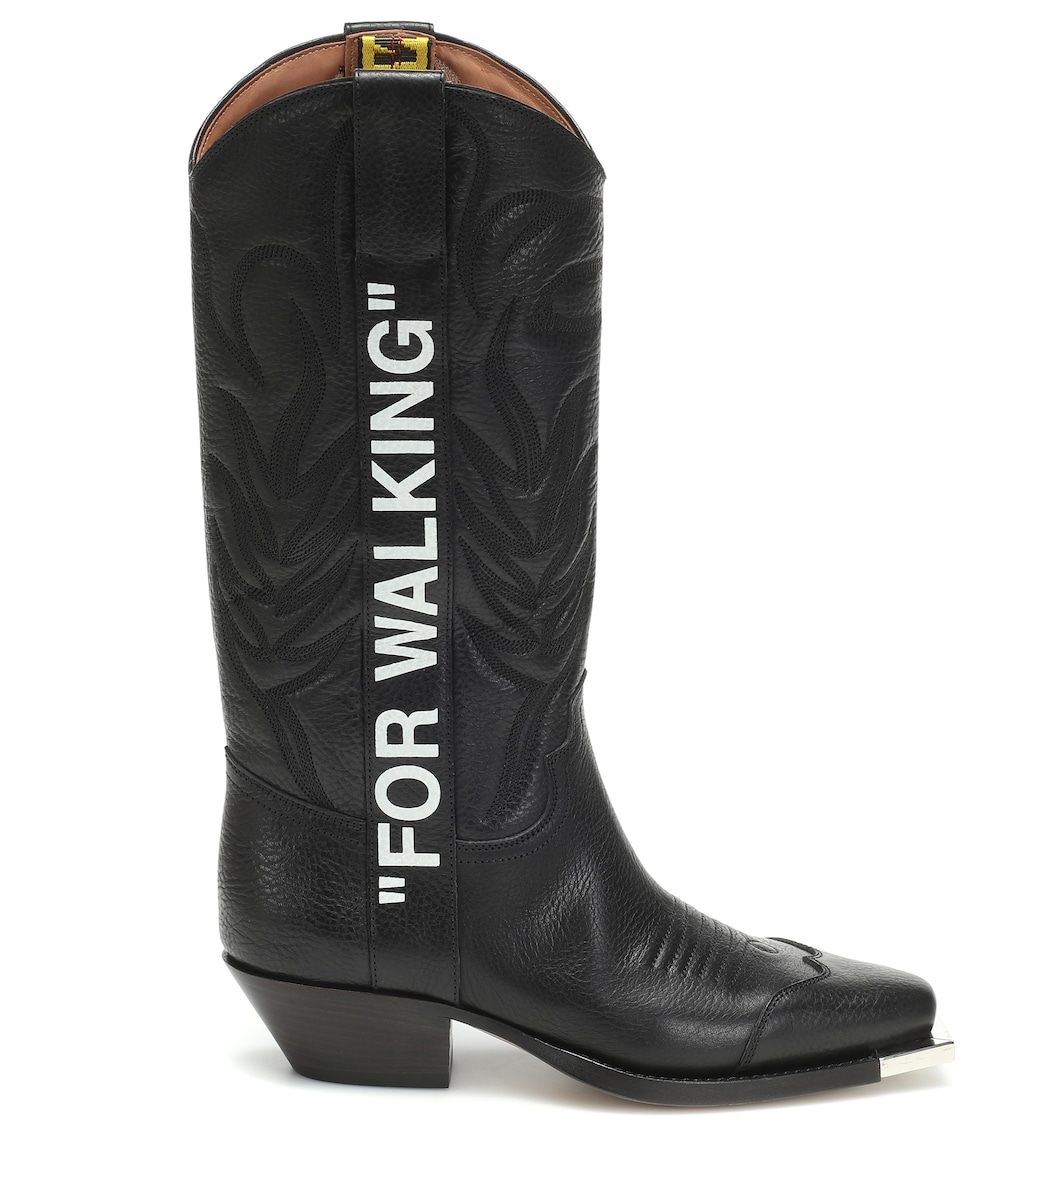 For Walking Leather Cowboy Boots - Off